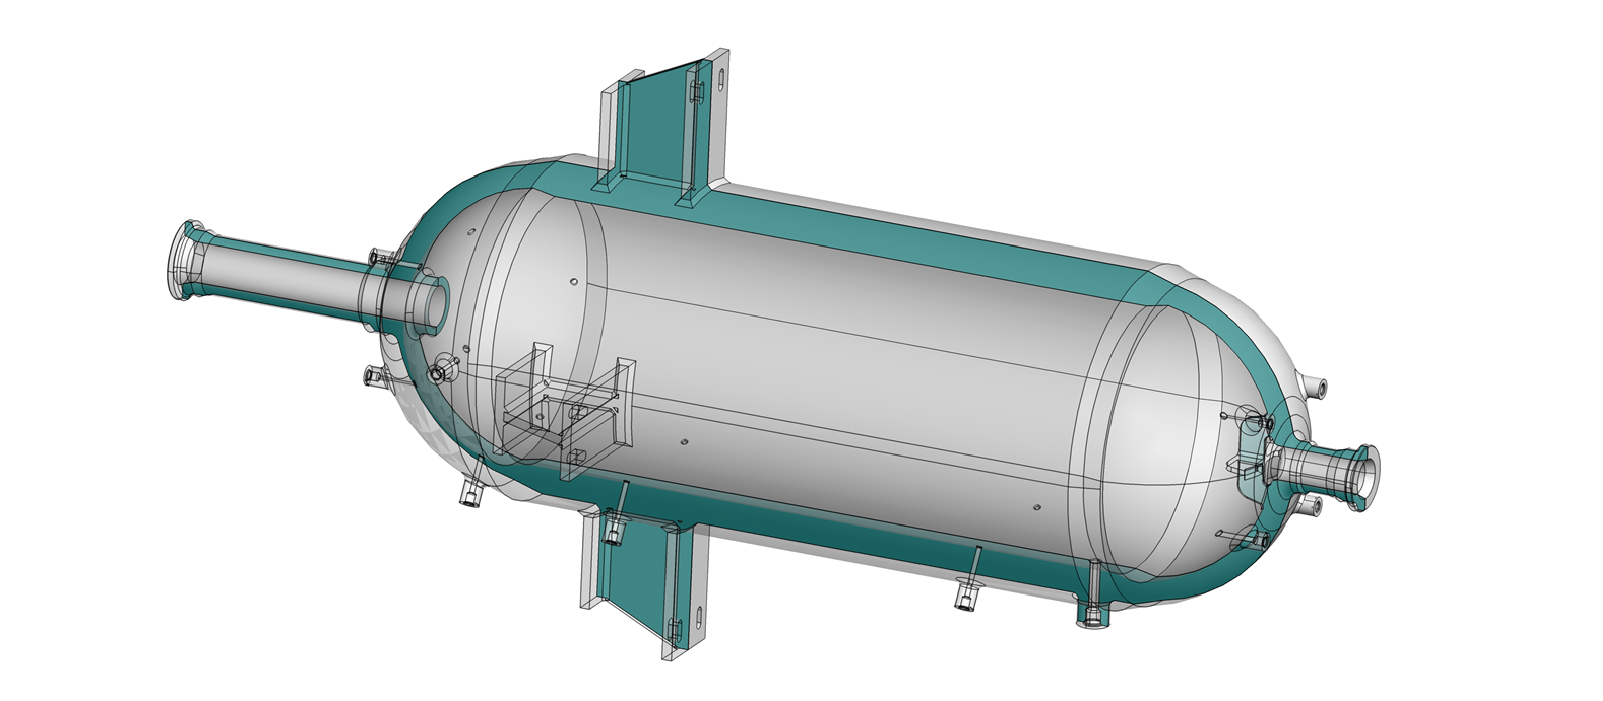 Figure 1: Thick-wall, high-pressure tank